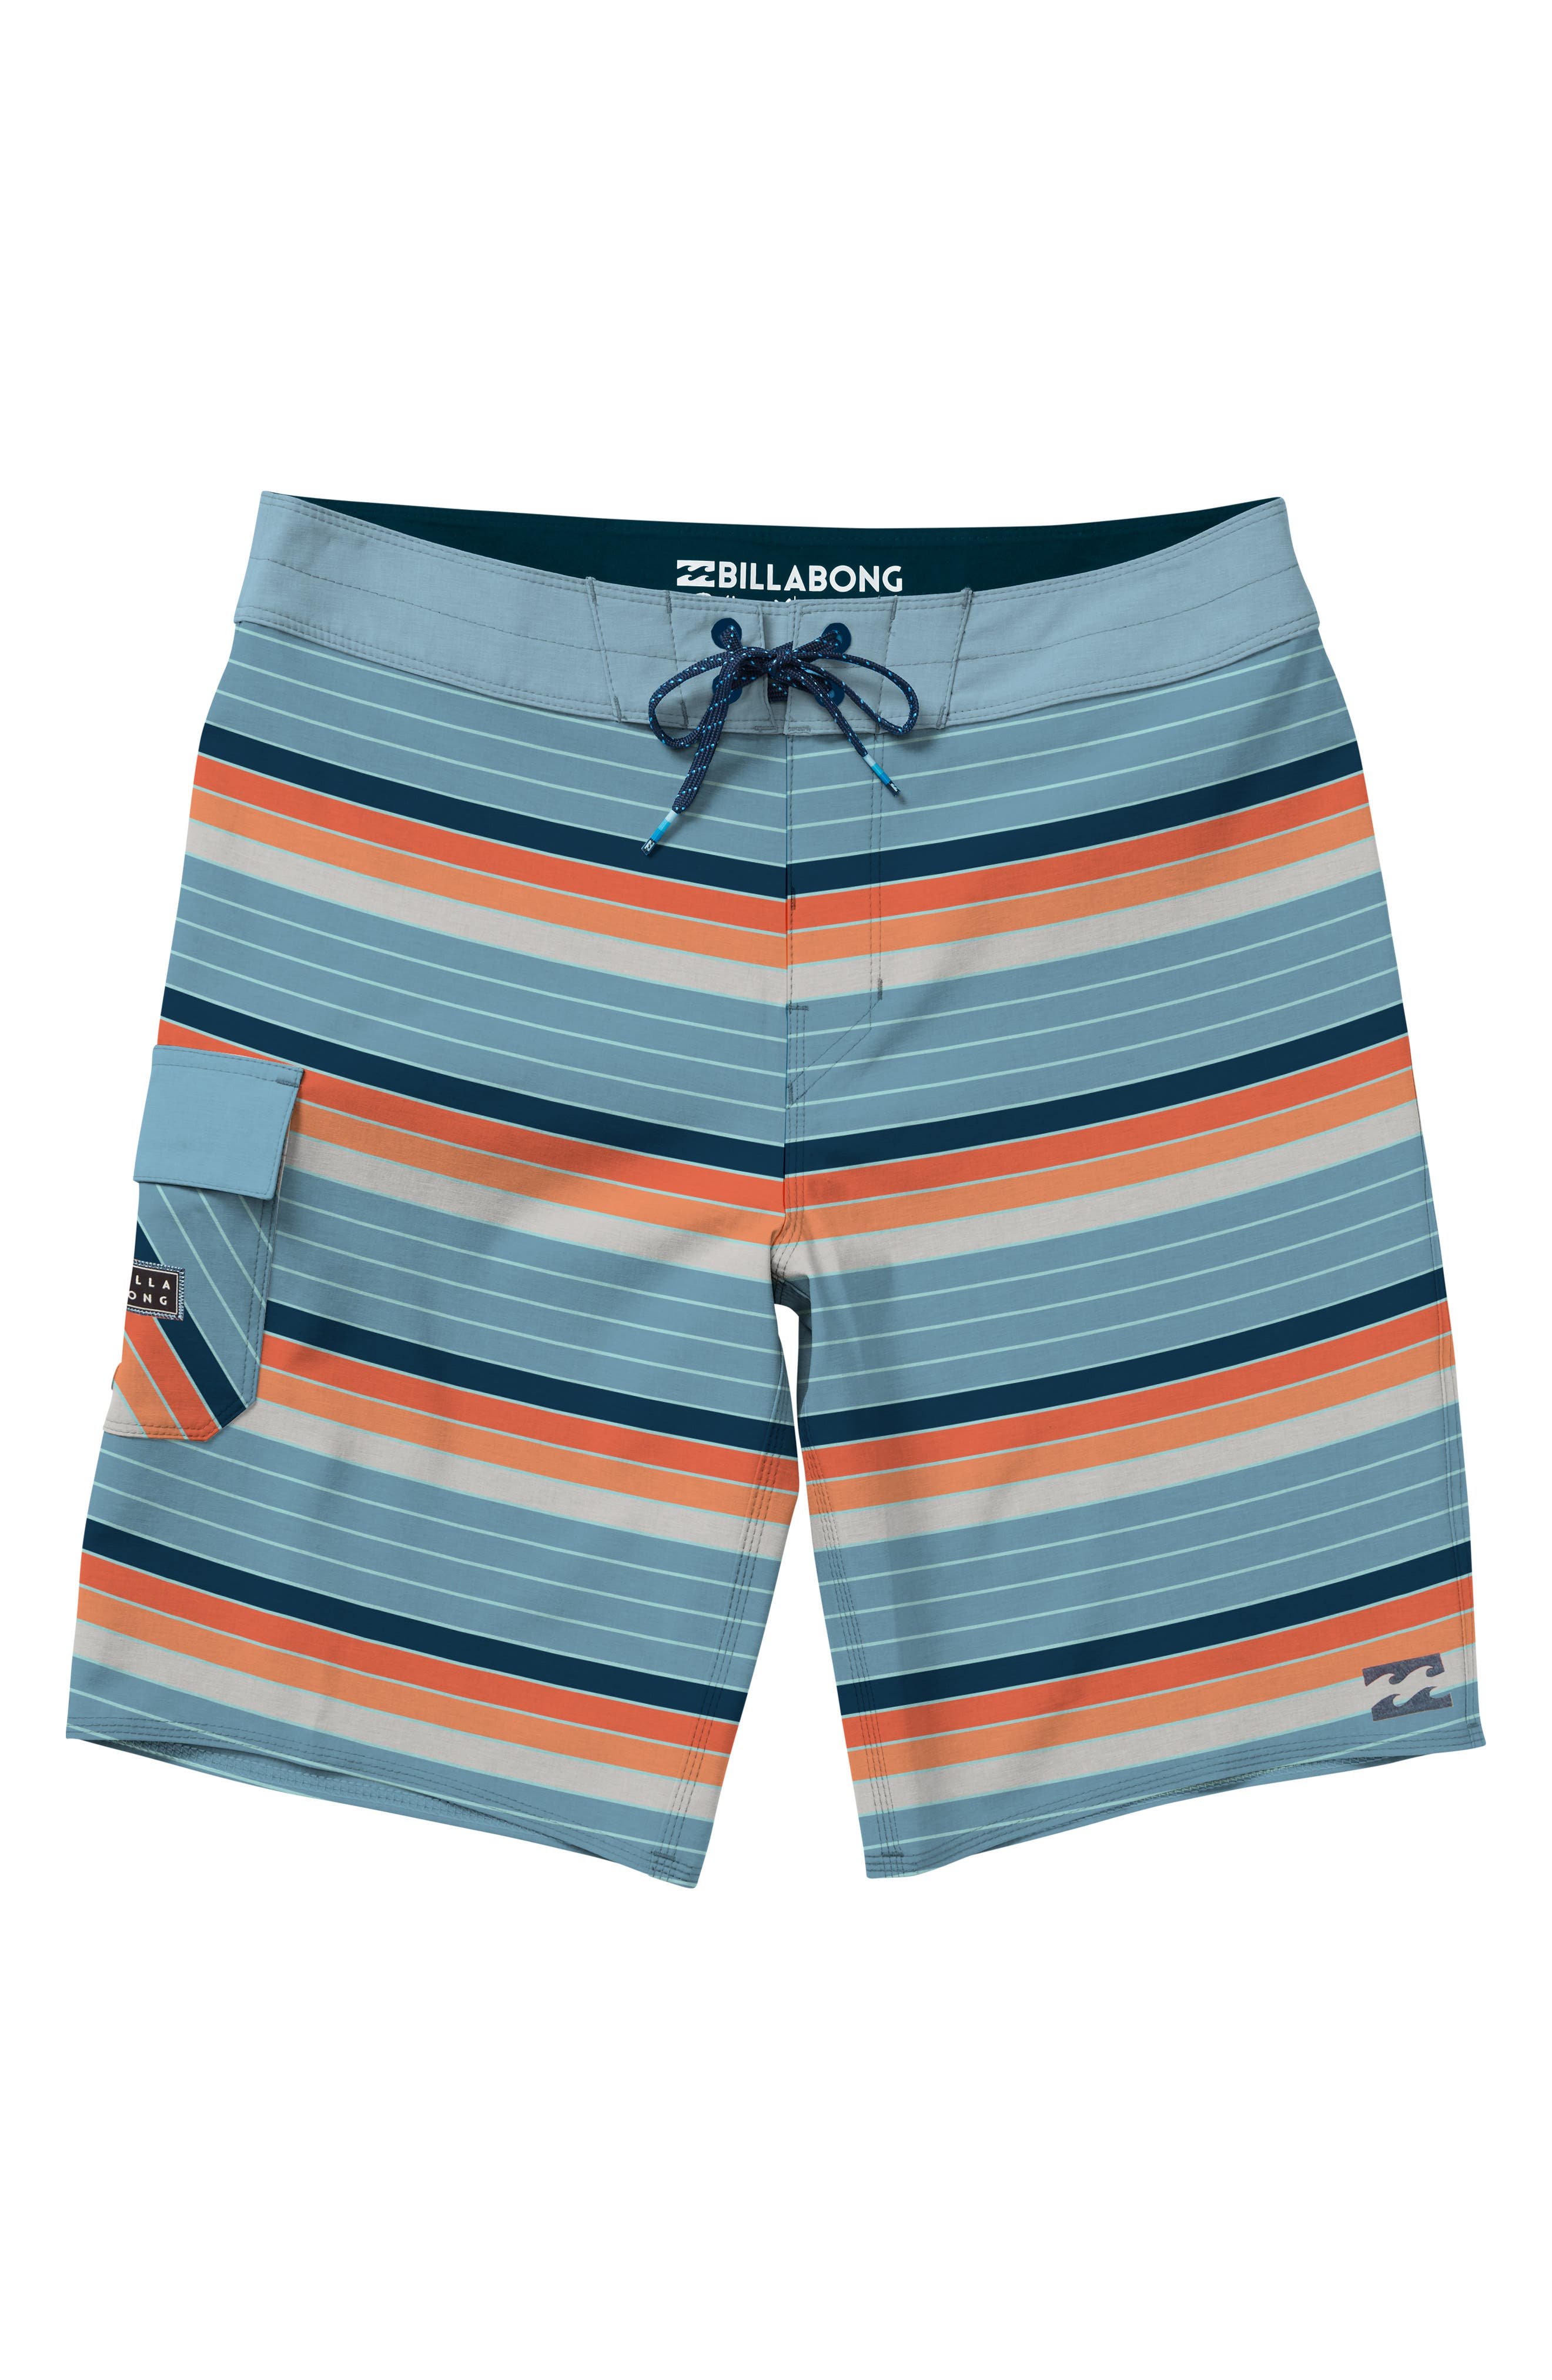 All Day OG Stripe Board Shorts,                             Main thumbnail 1, color,                             Coral